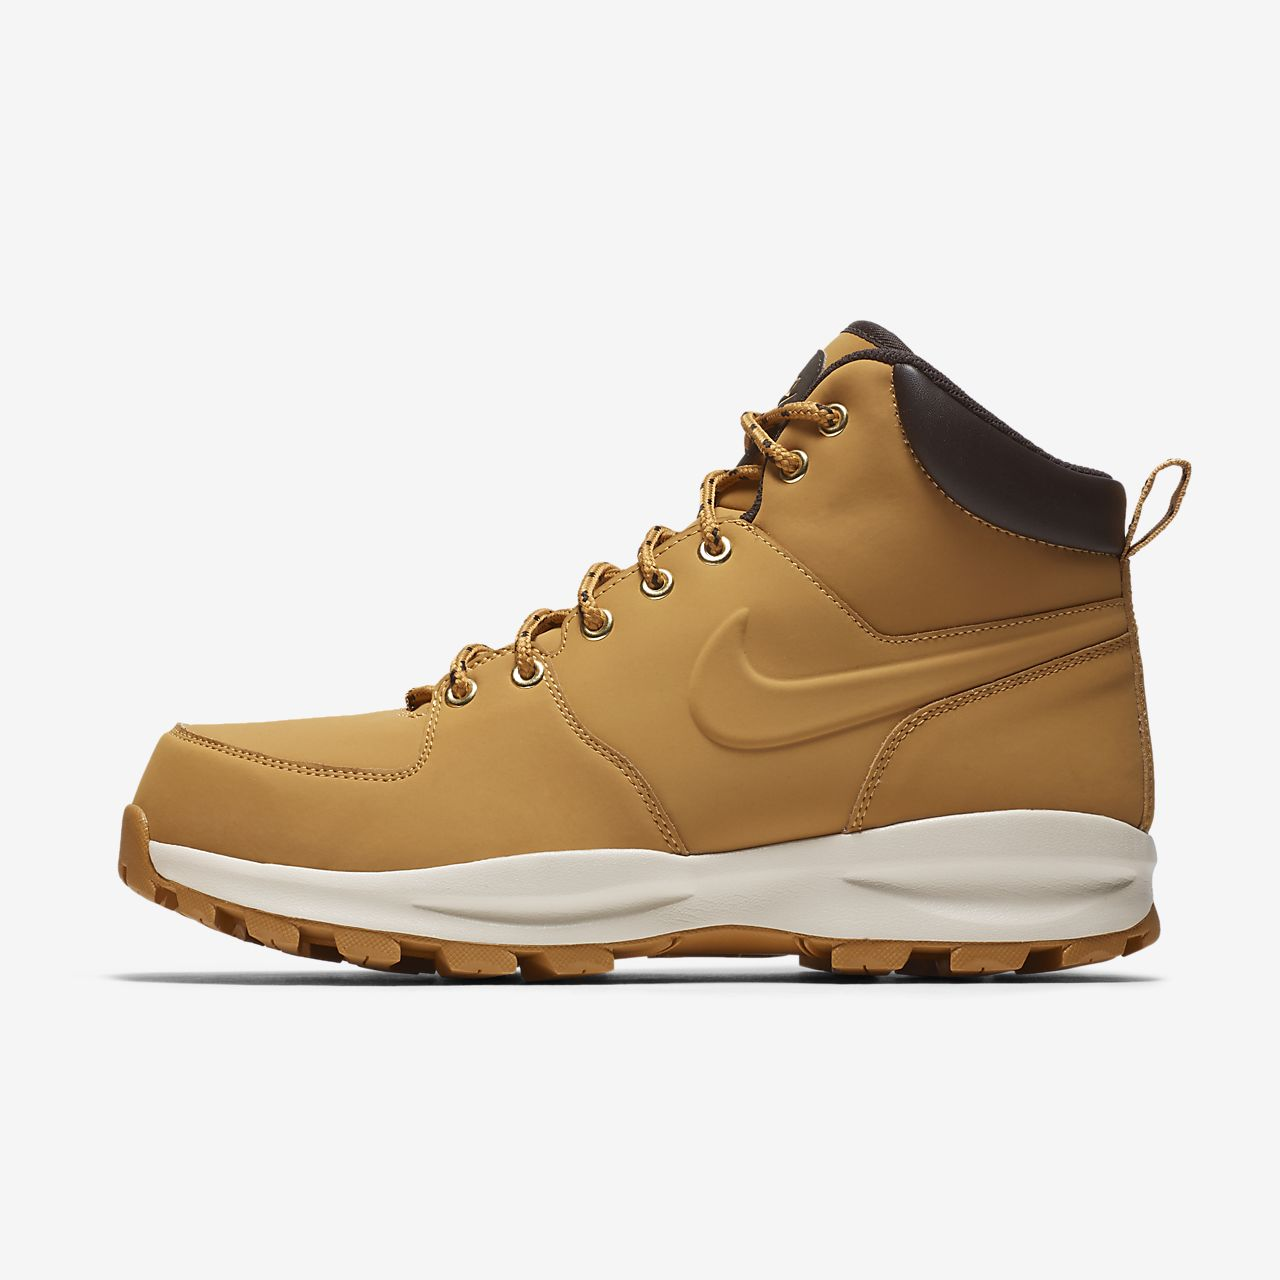 new concept ea878 7bf38 ... Chaussure Nike Manoa pour Homme